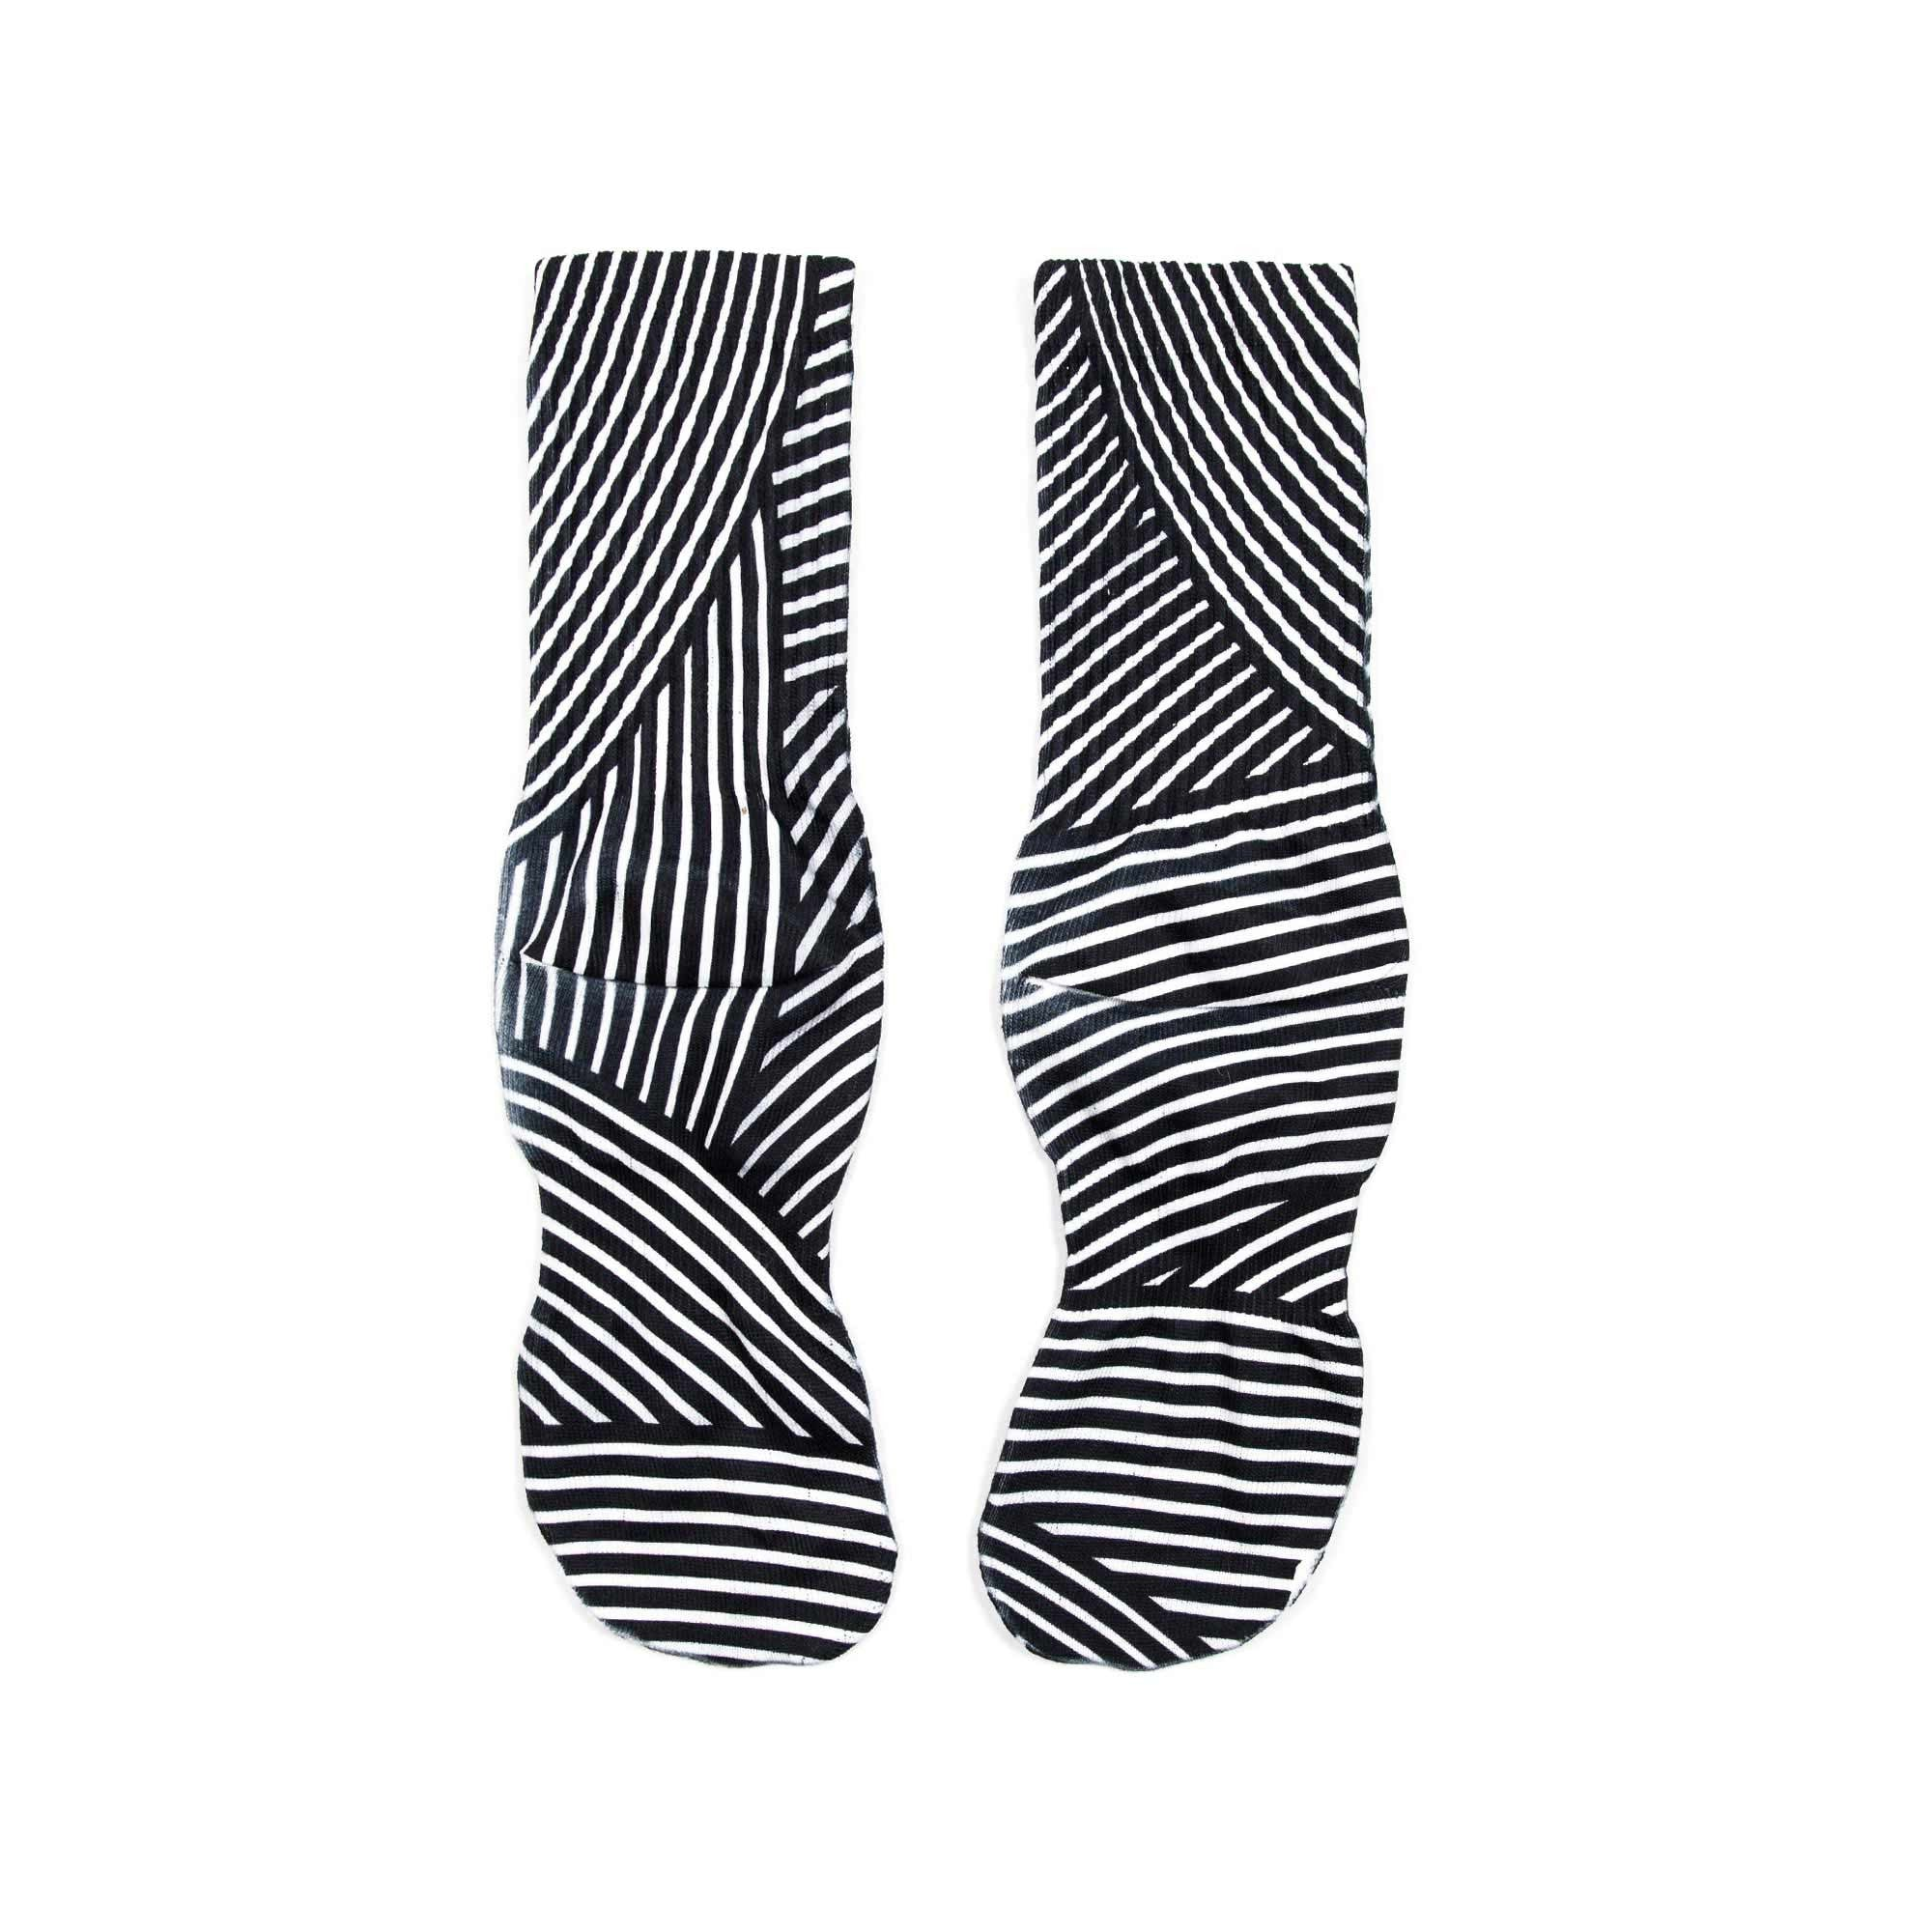 Digital Fibers High Comfort Crew Socks